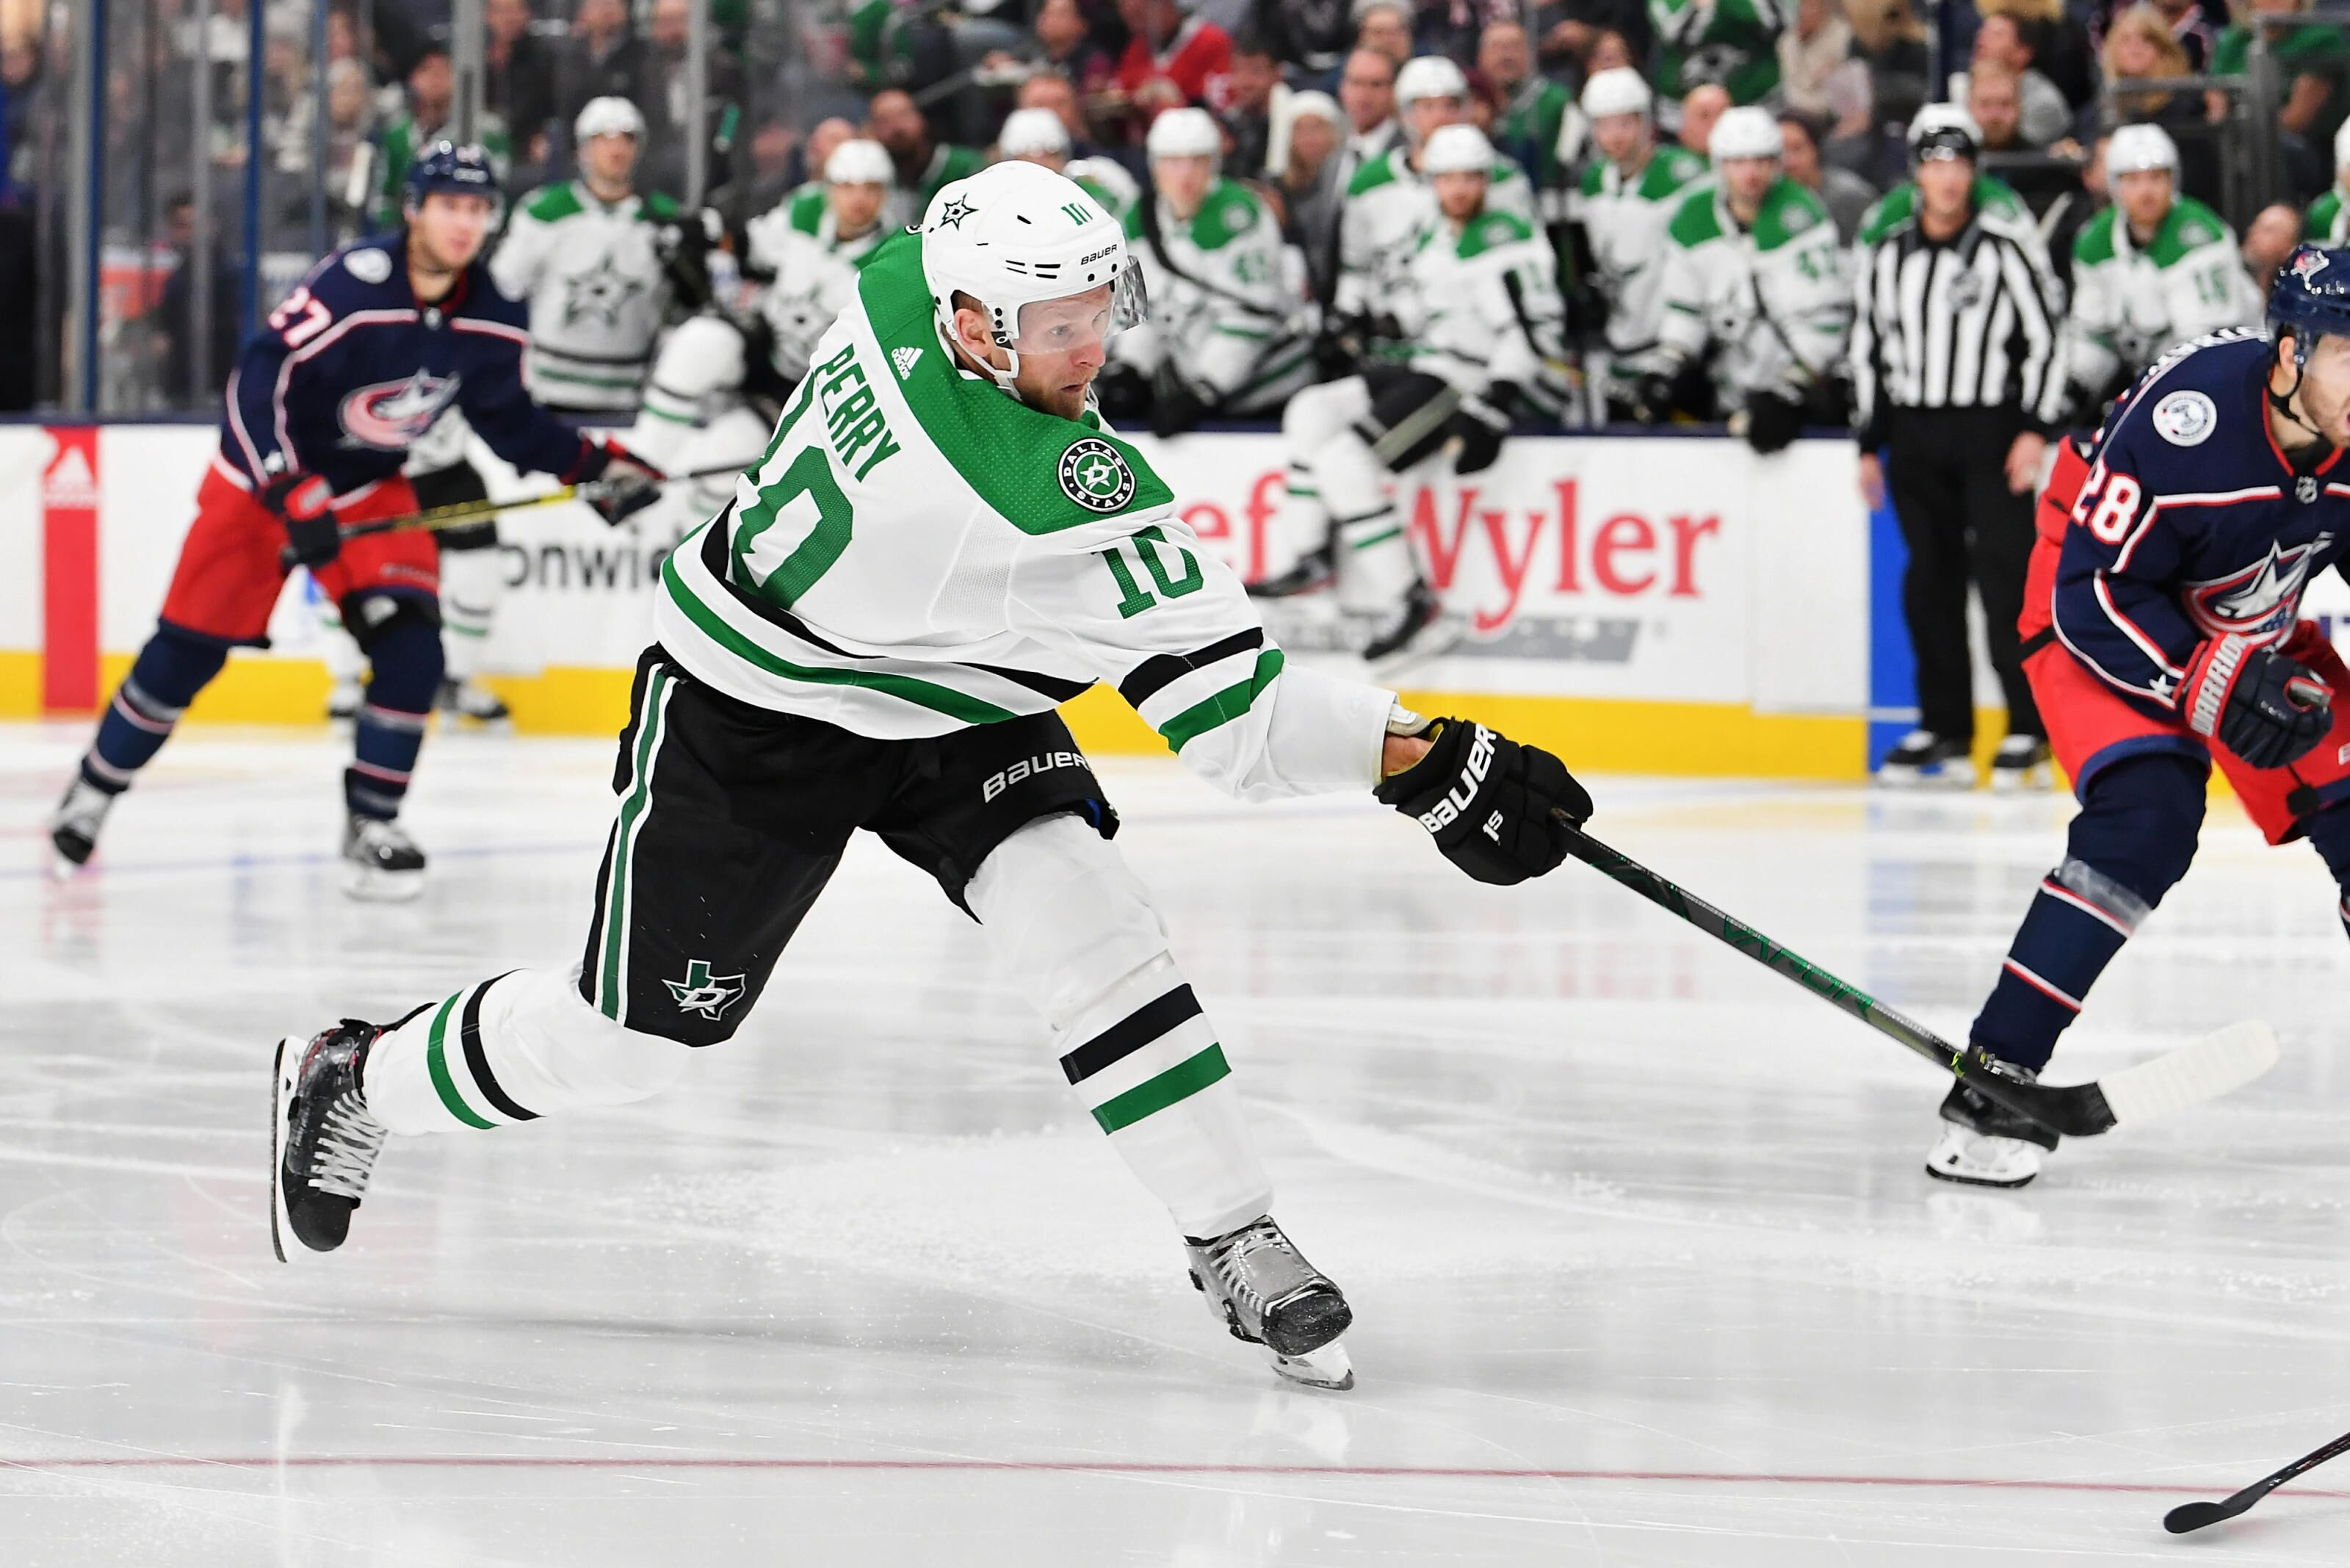 Dallas Stars: Corey Perry Brings Important Elements To Dallas Lineup